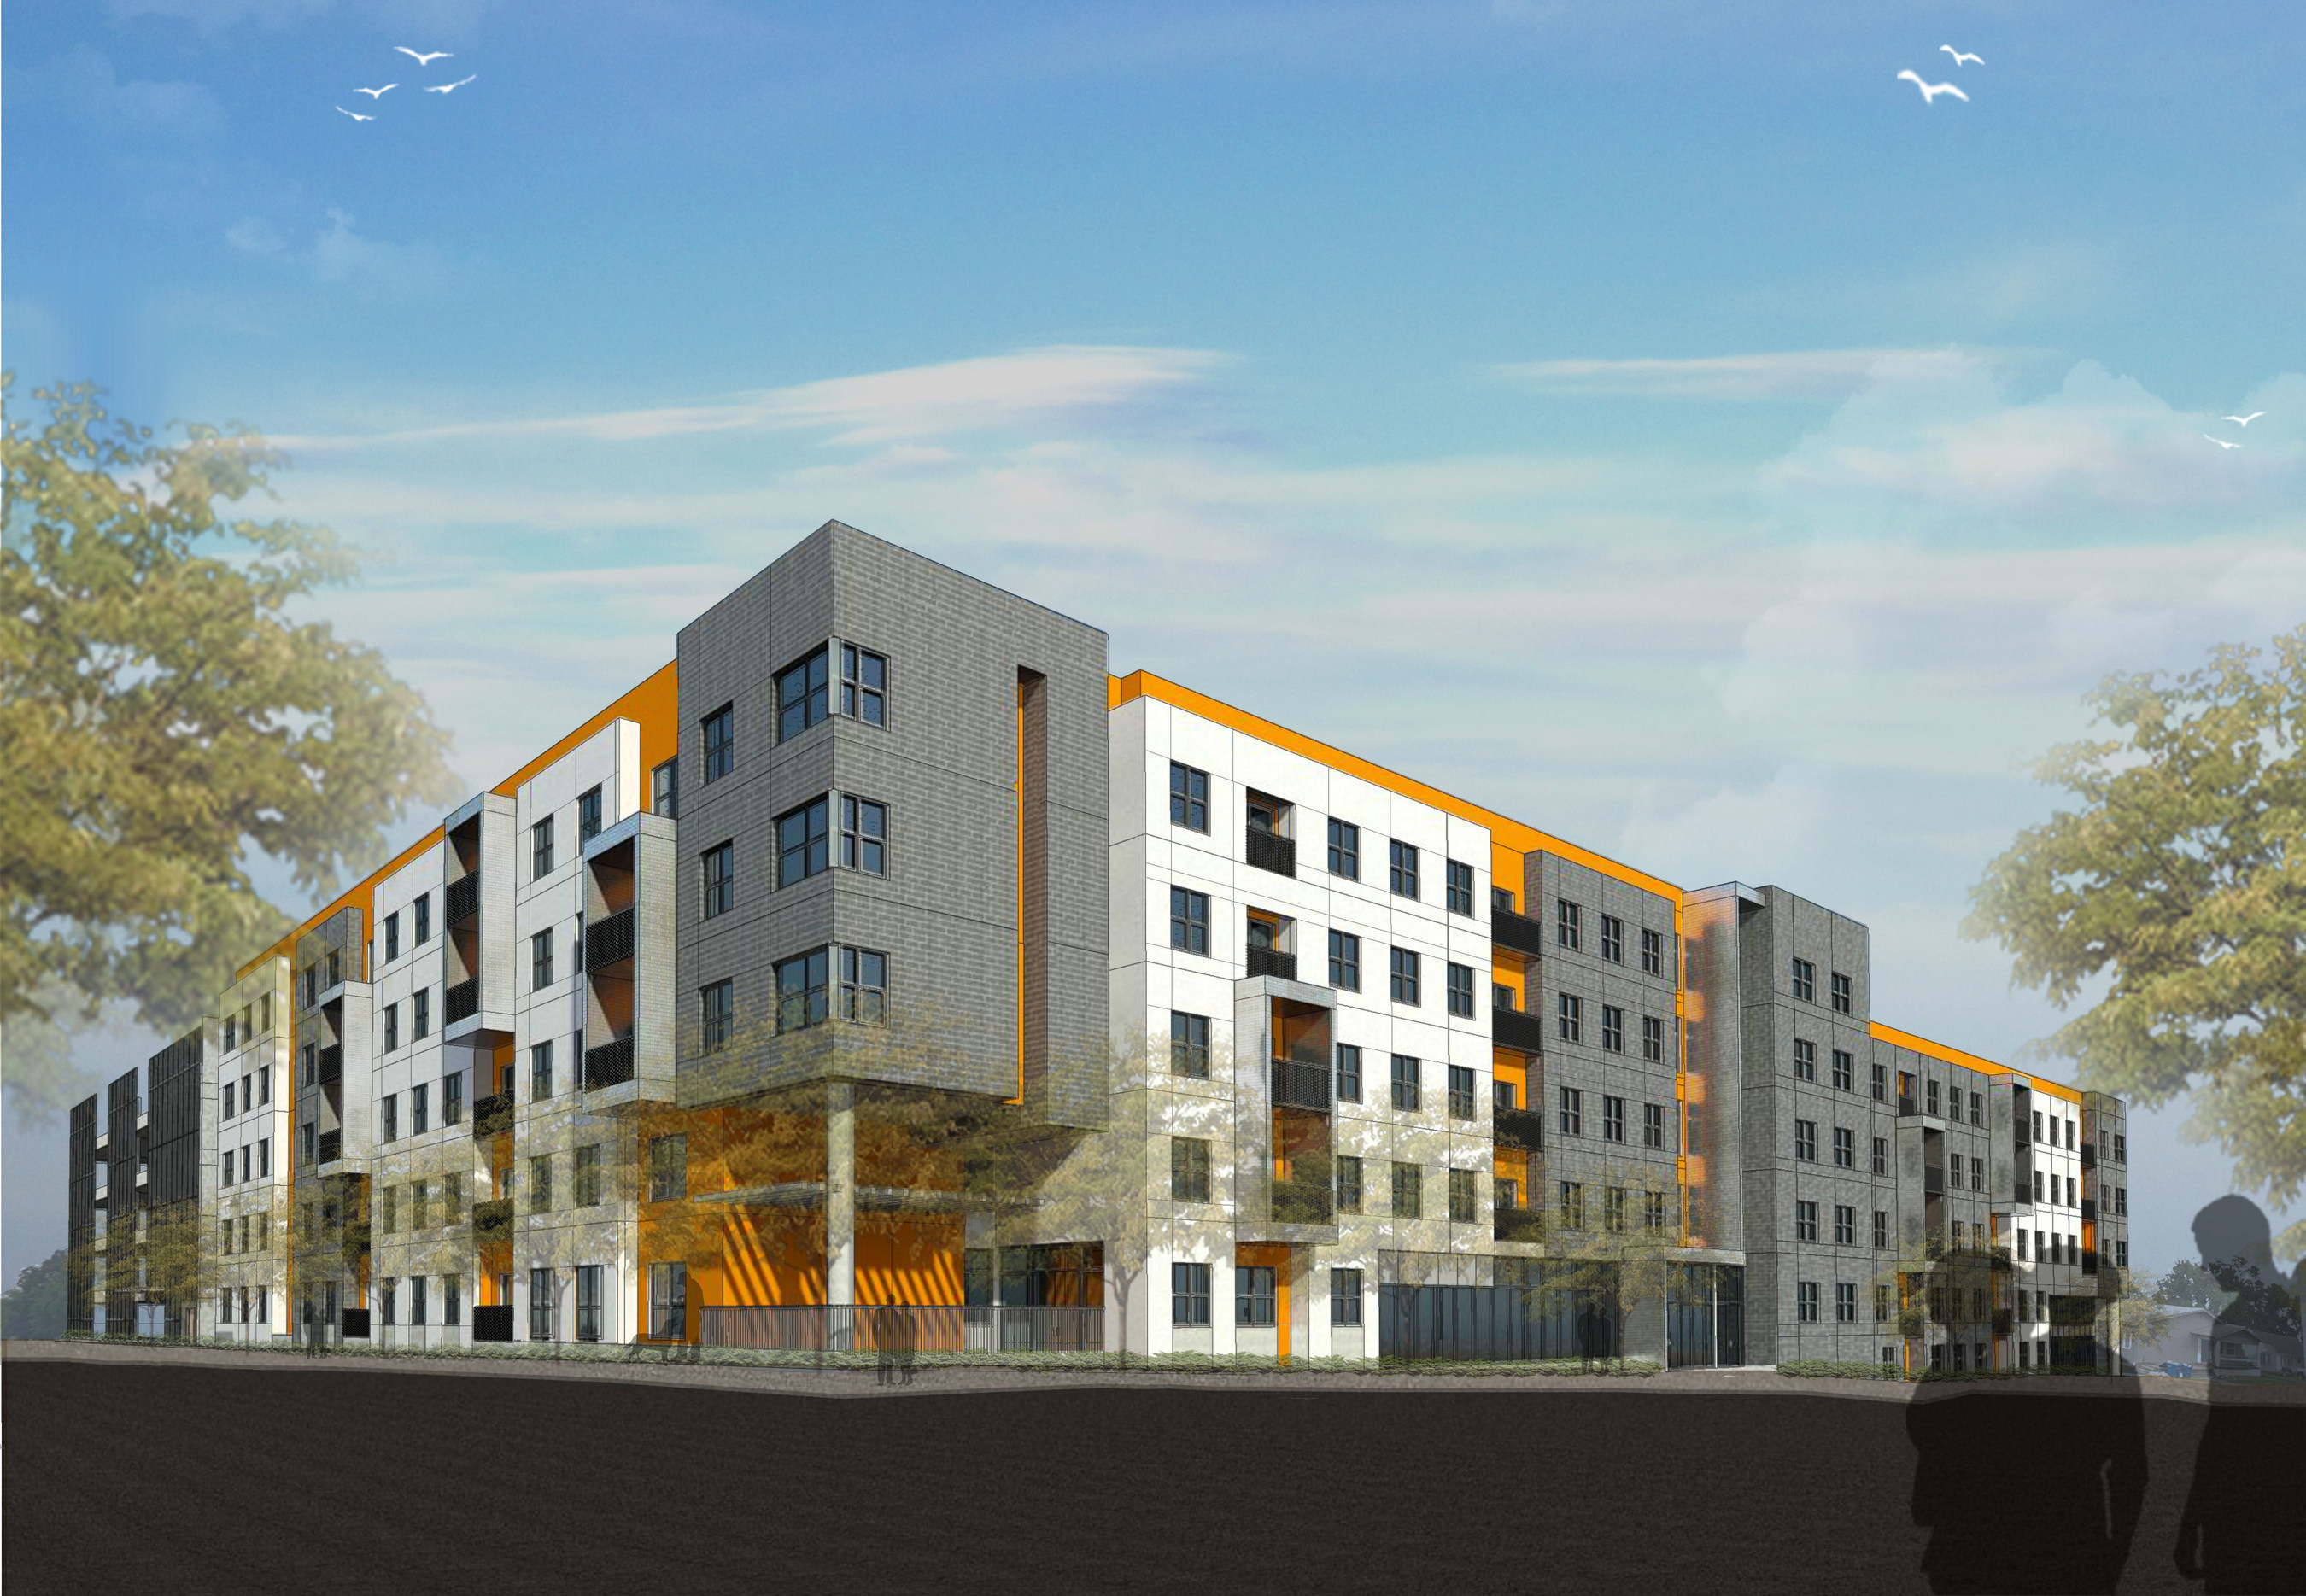 Rendering Of Avid Square Edr S New Off Campus Development Adjacent To Oklahoma State University